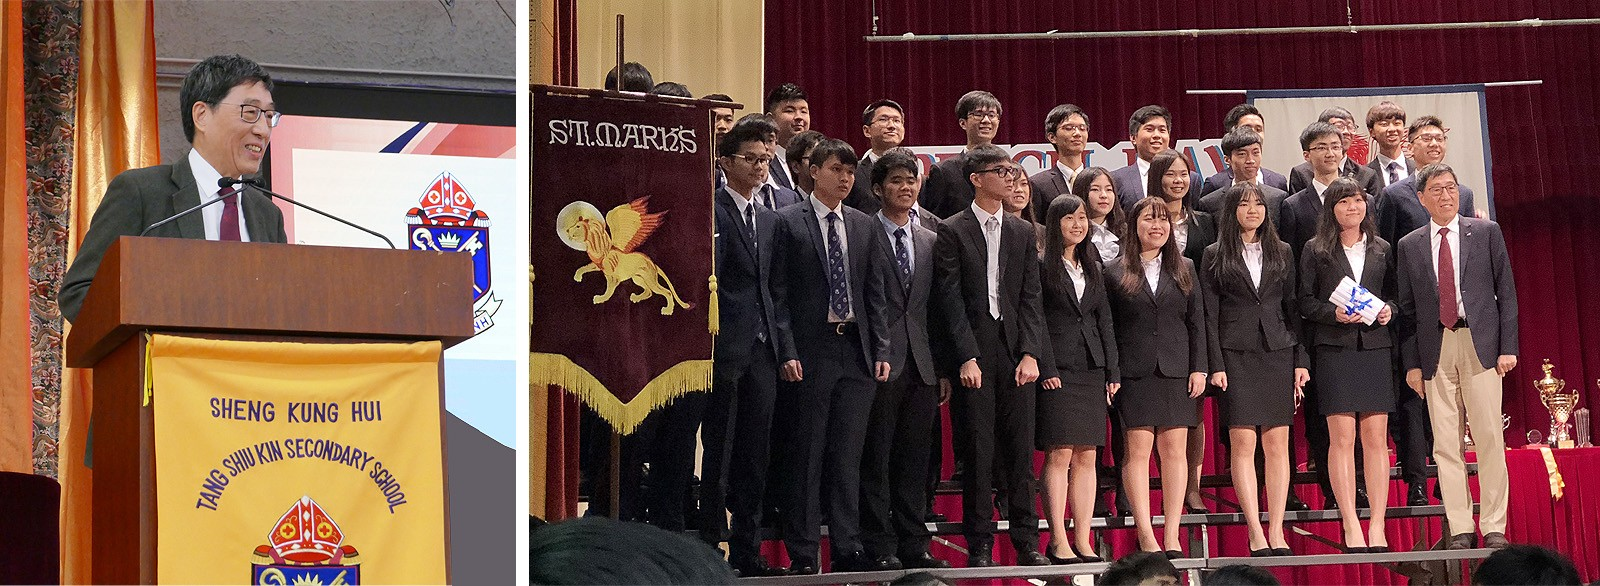 President Kuo attends speech days of two secondary schools.